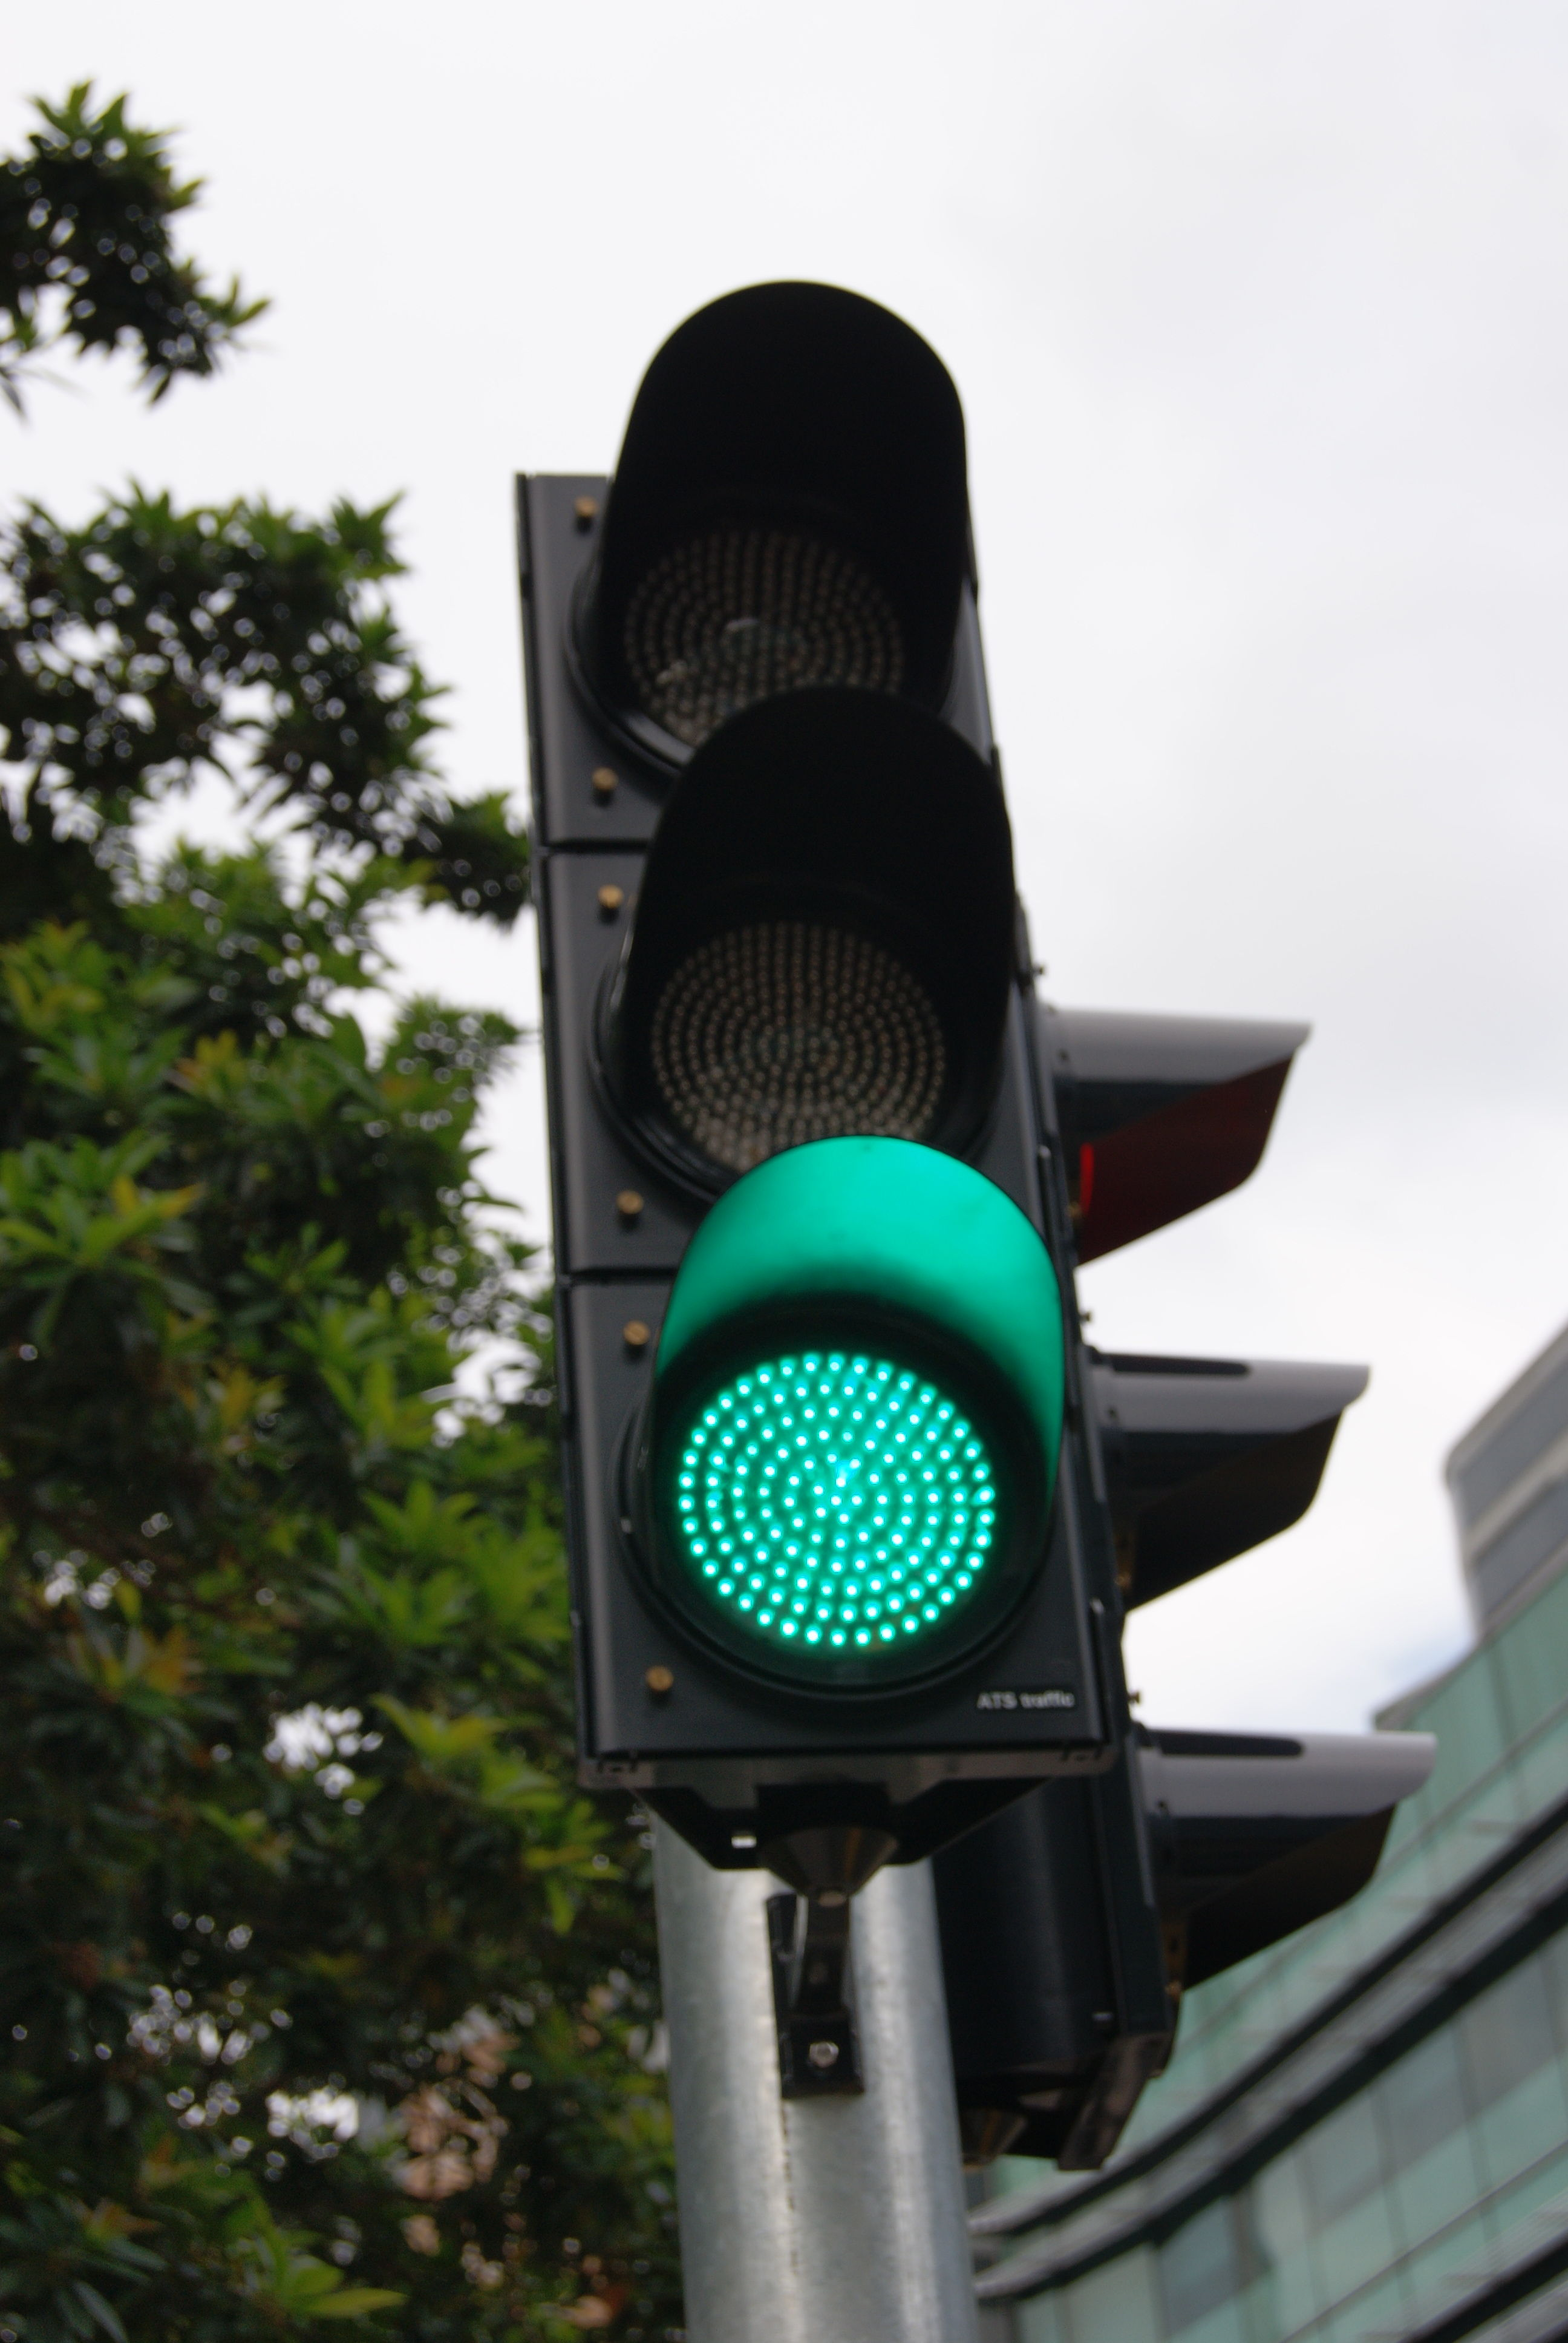 Image Result For Horizontal Traffic Light